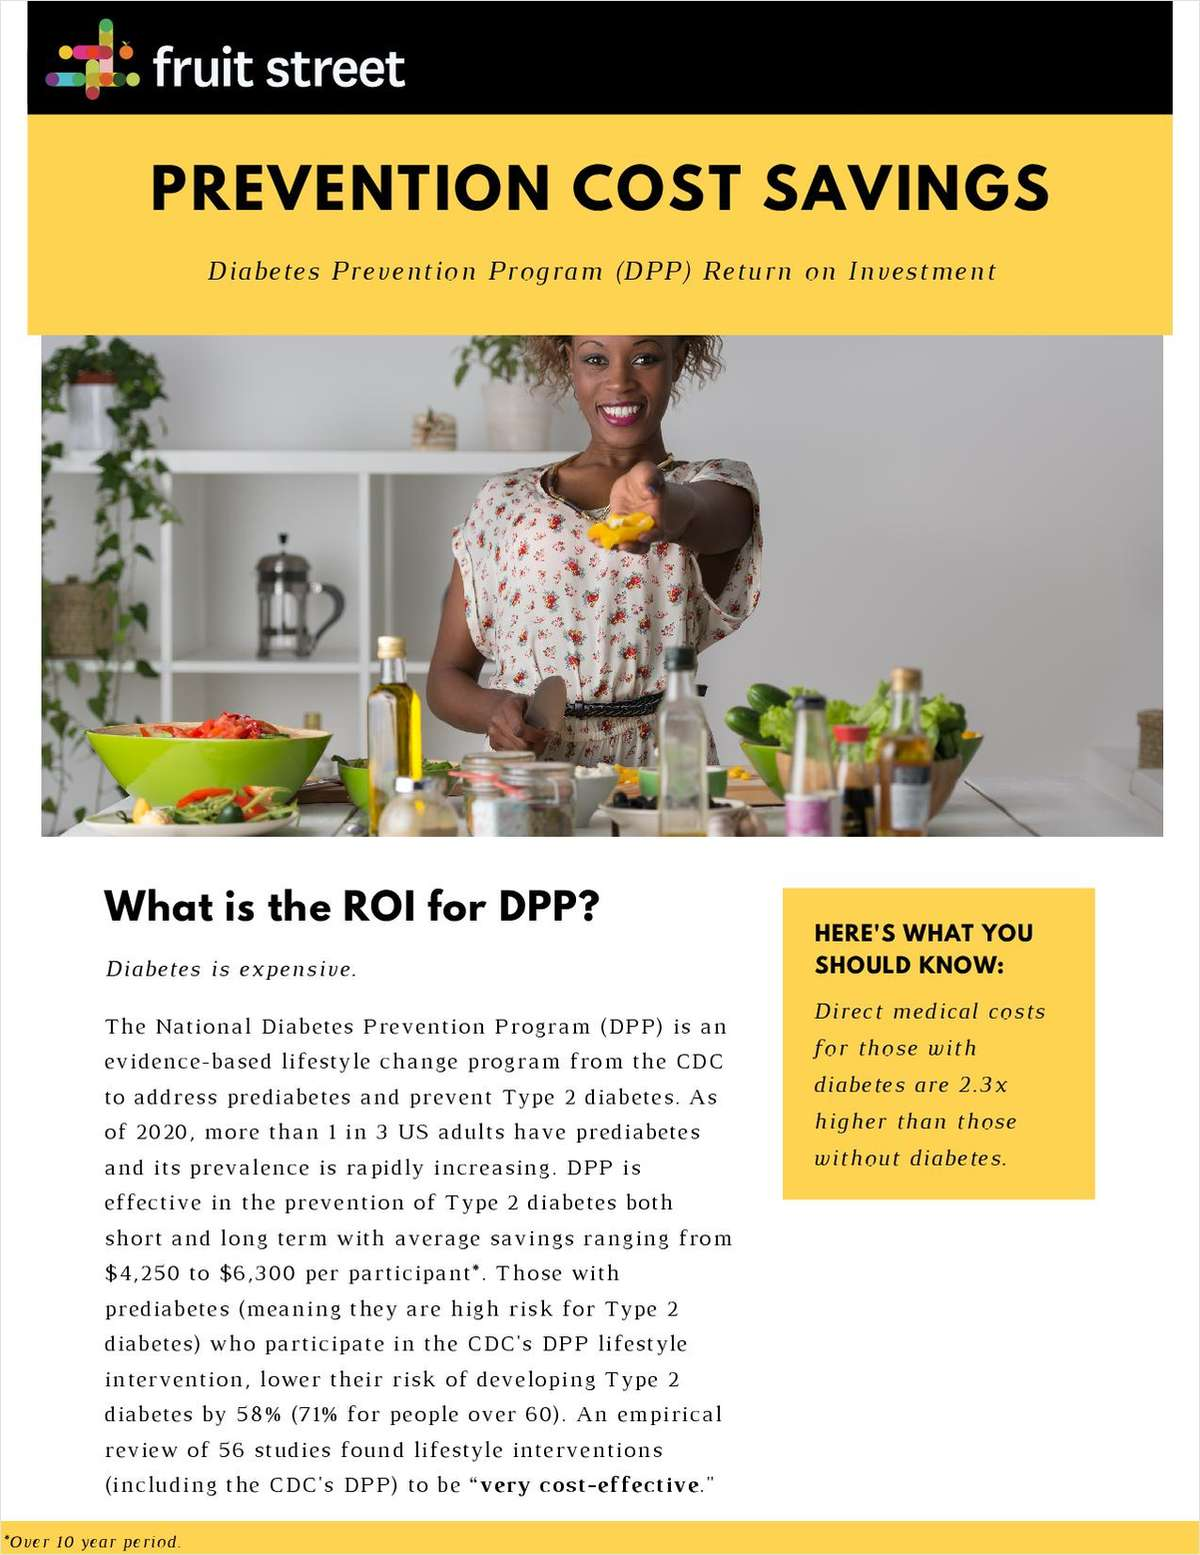 Prevention Cost Savings: What is the ROI for Diabetes Prevention?